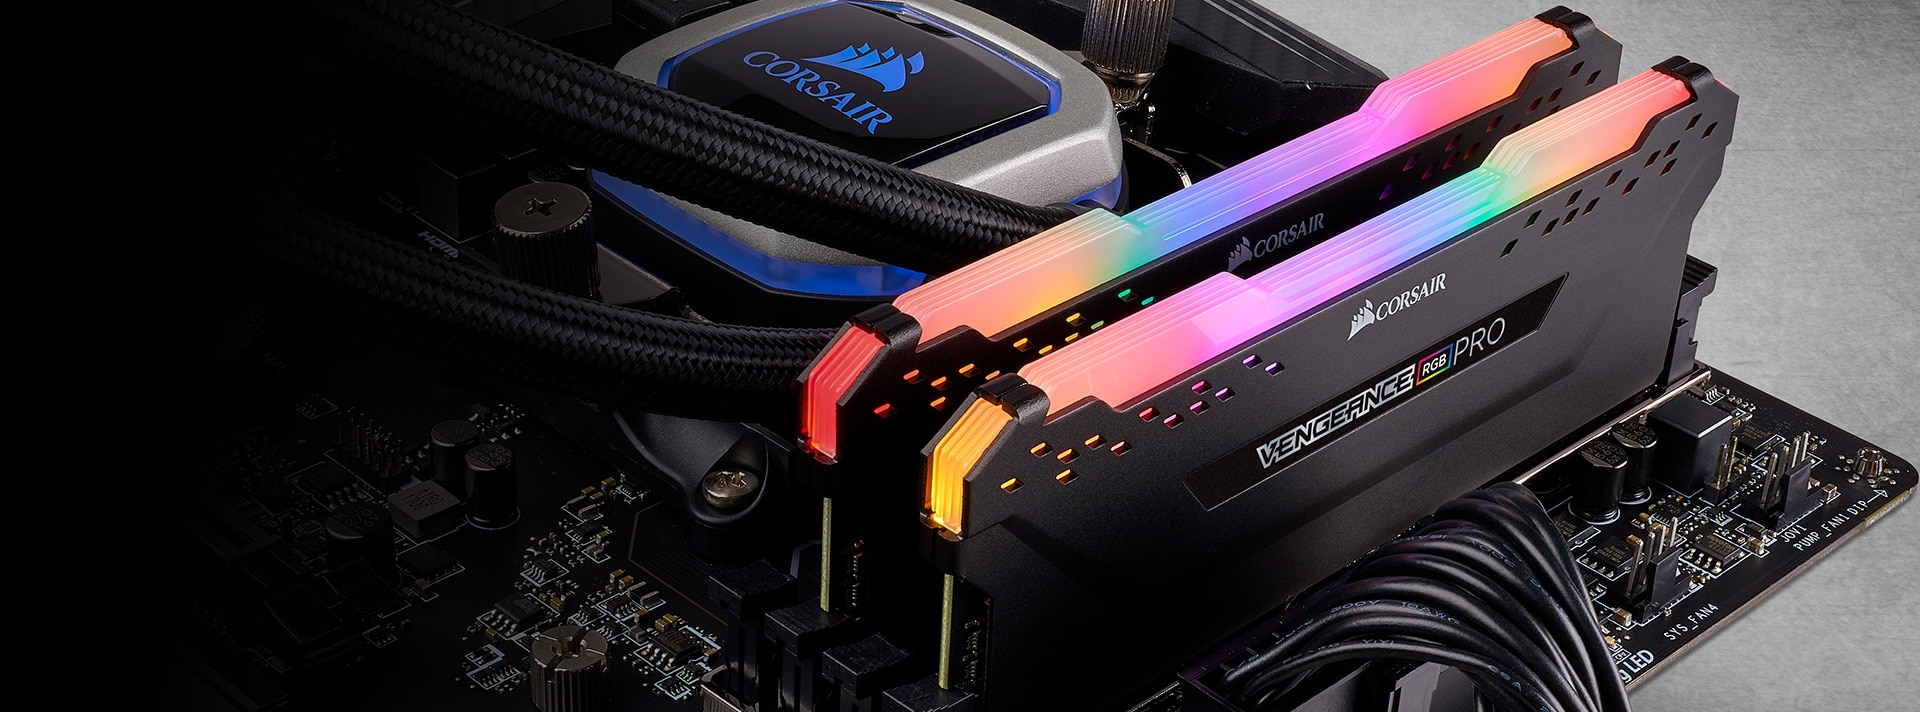 Memory For Desktops And Laptops Corsair Add Ram To Your Laptop Easily